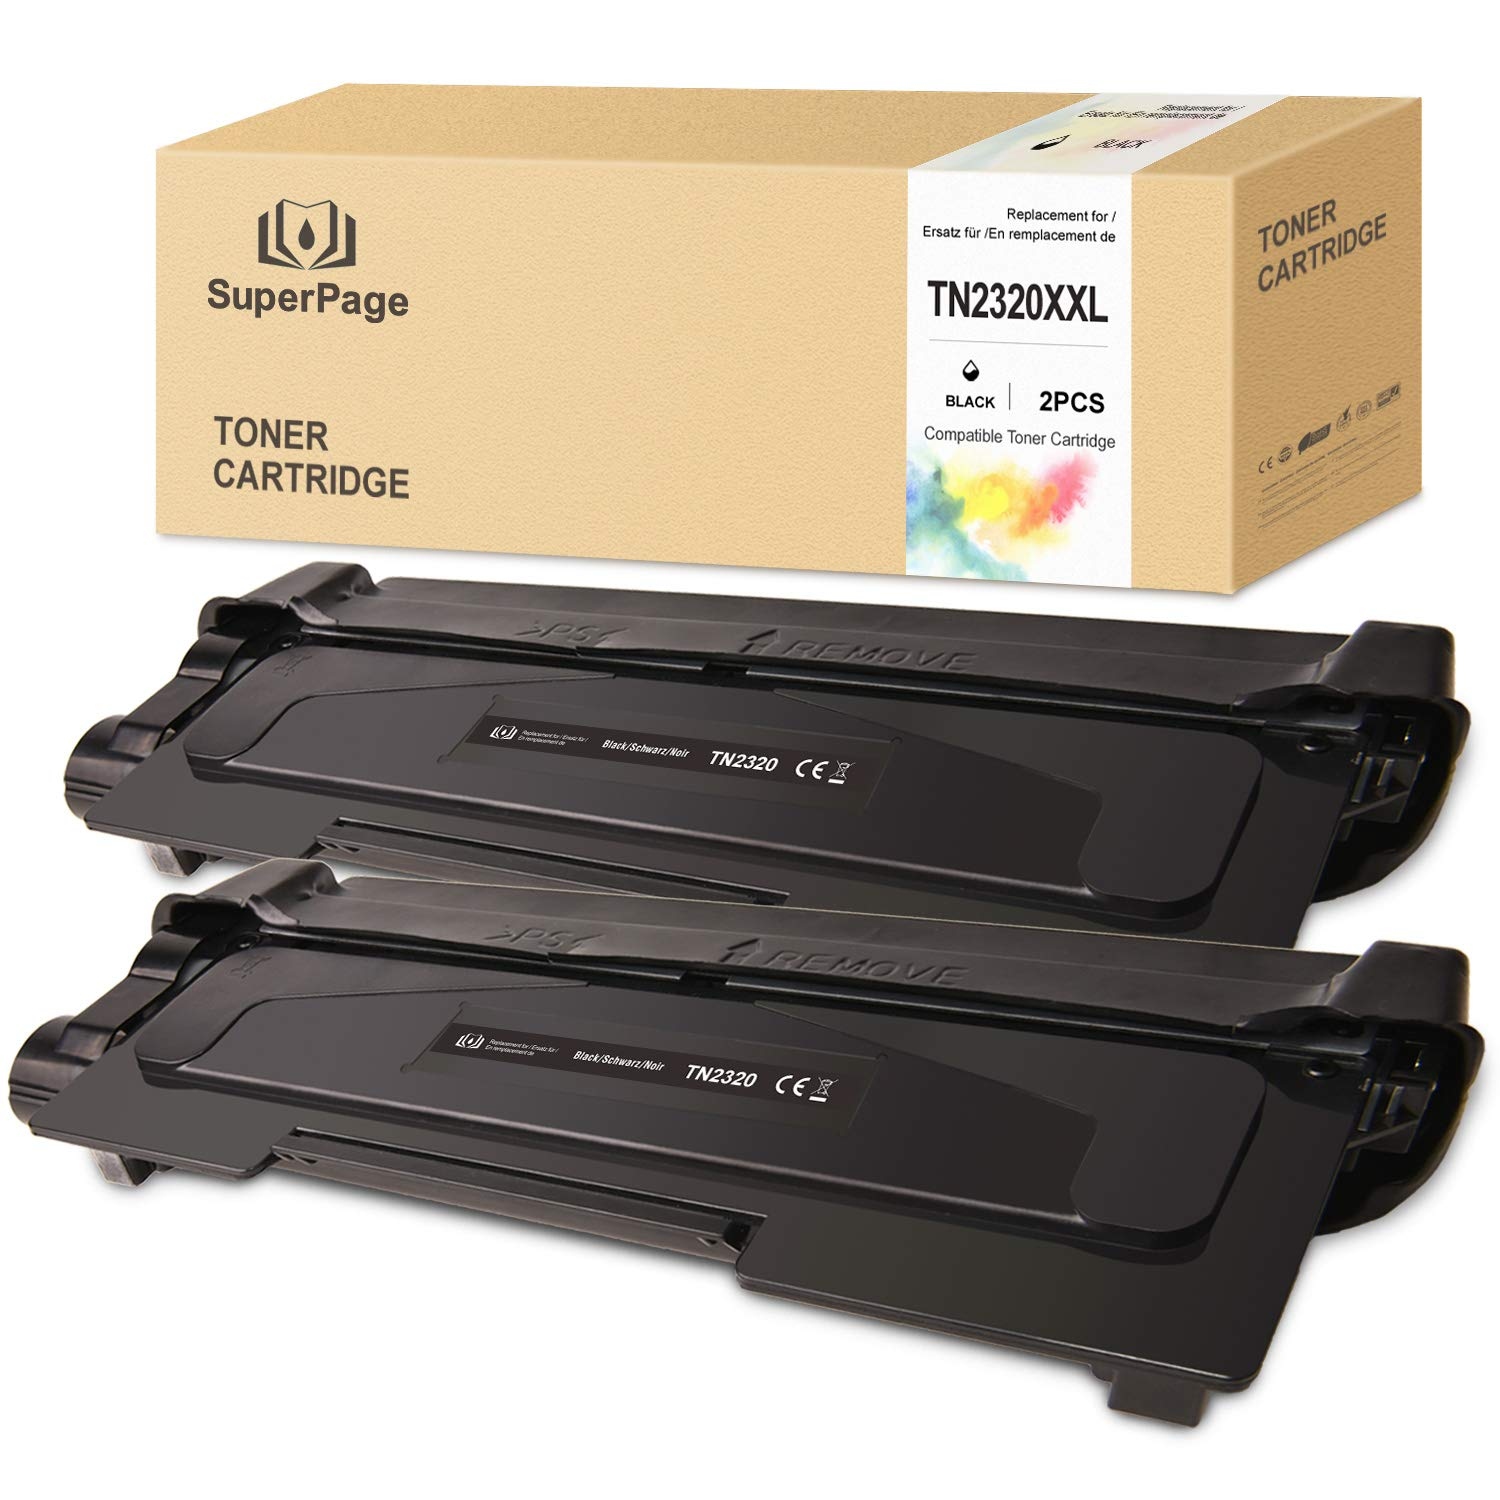 Superpage TN-2320 TN2320 Cartucho de tóner Compatible para Brother ...